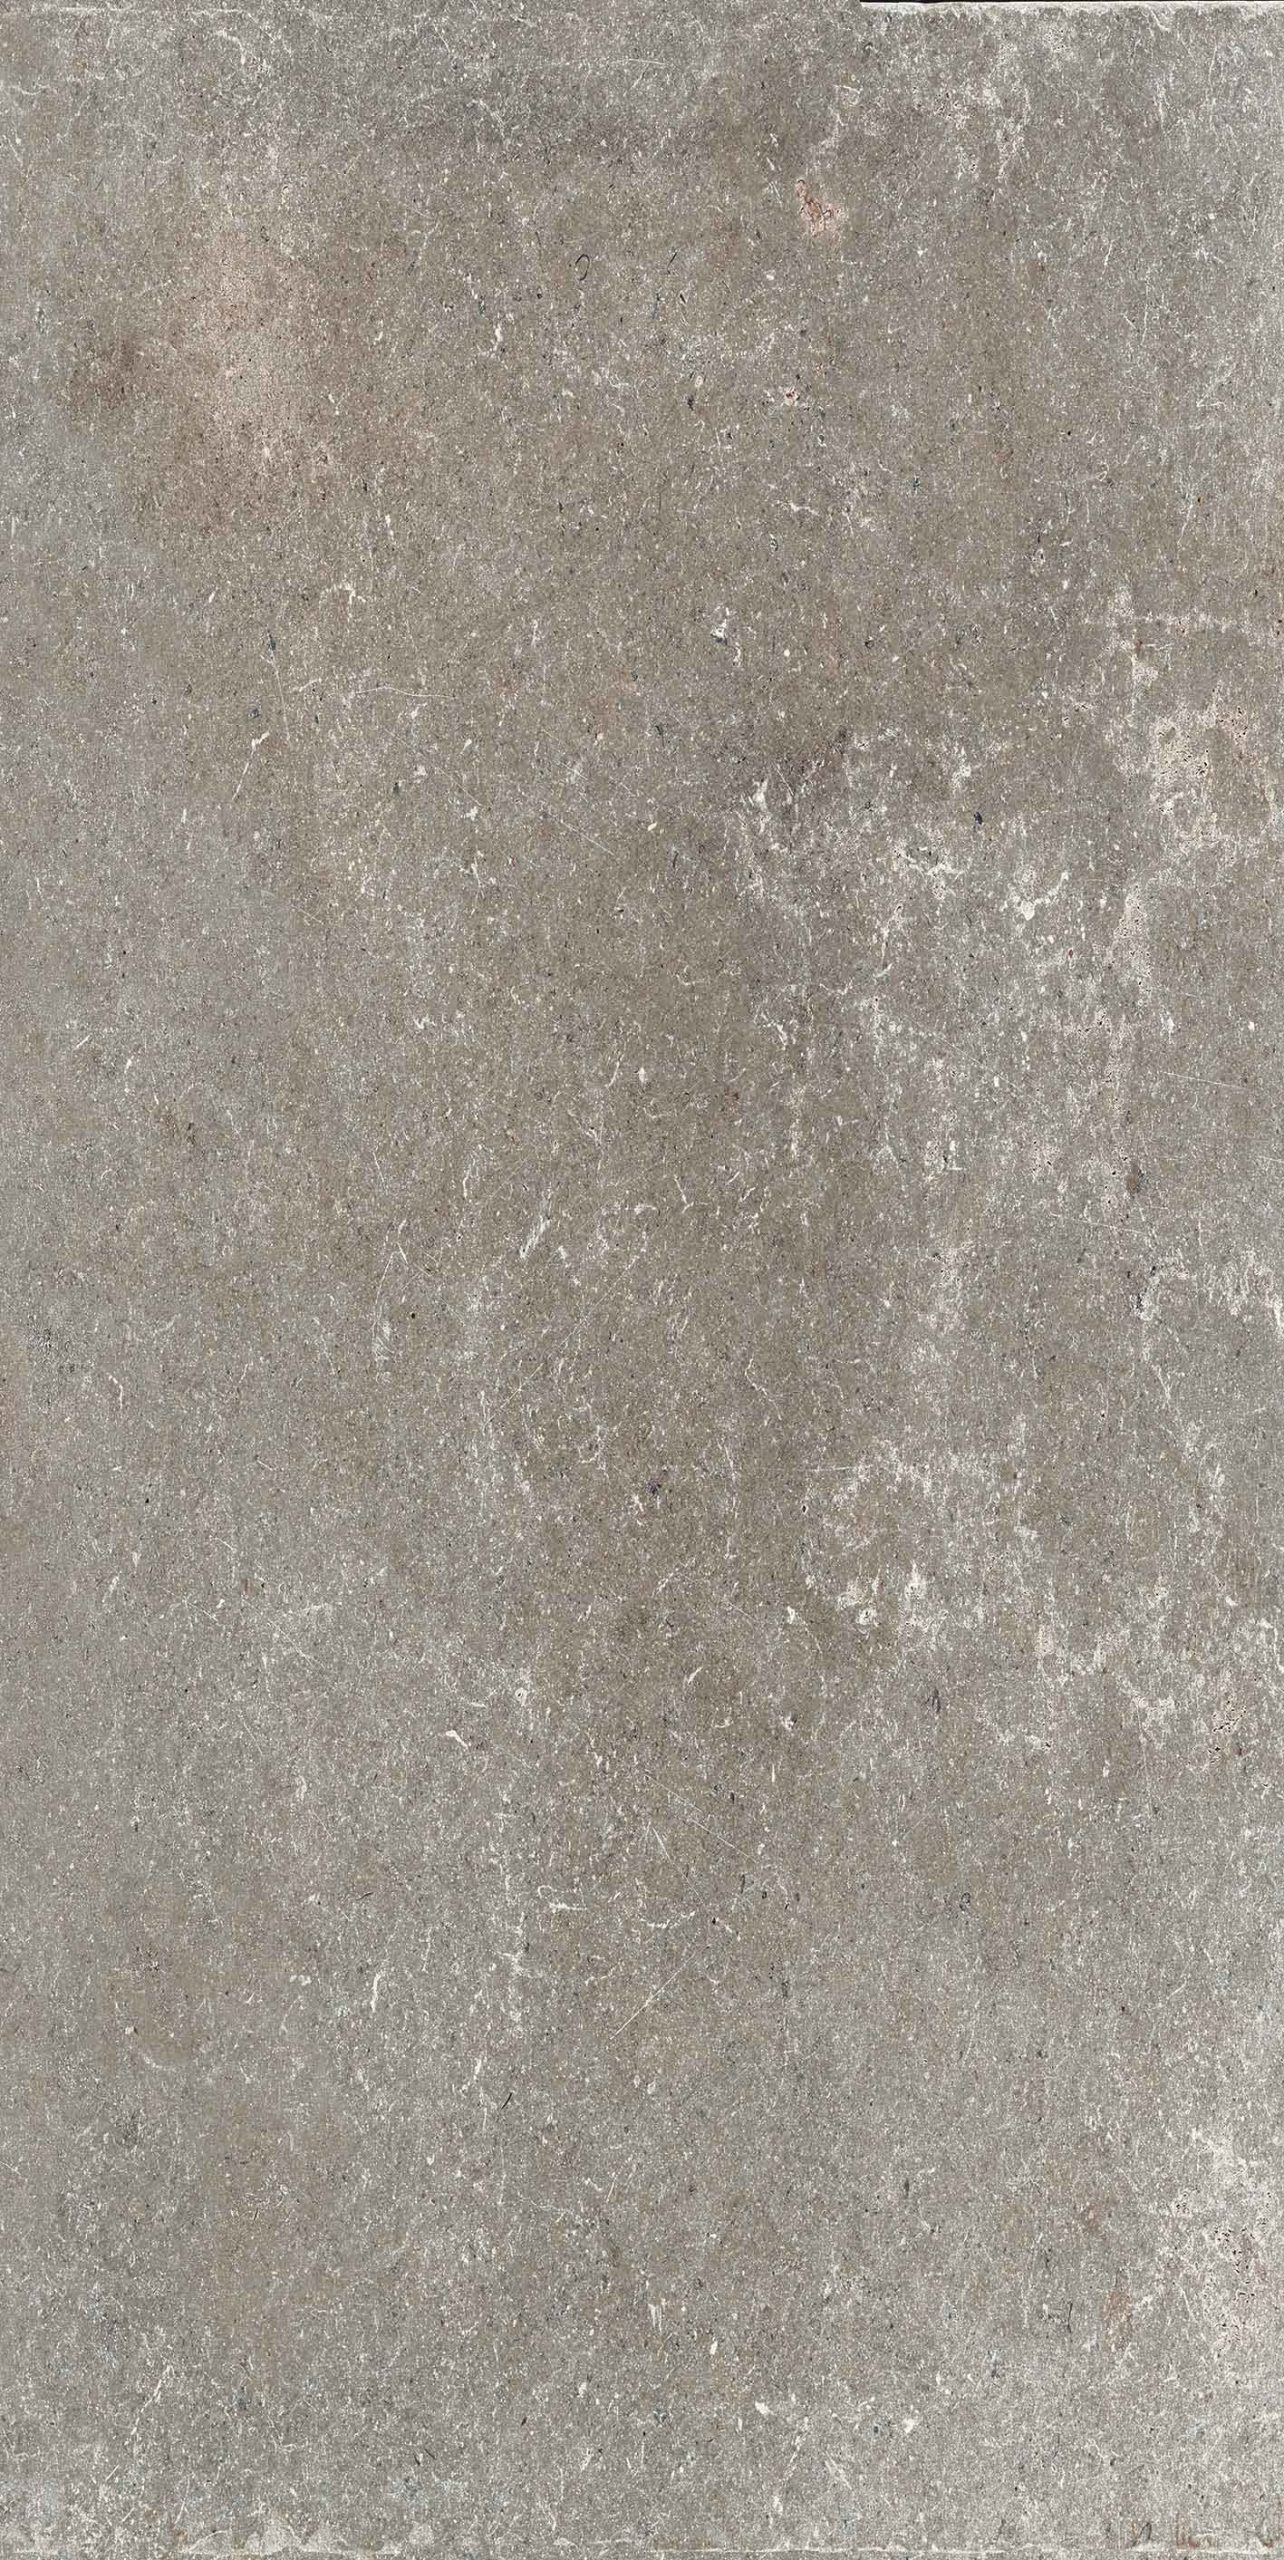 Stontech 4.0 Stone 03 Slate-hammered 10mm 60 x 120